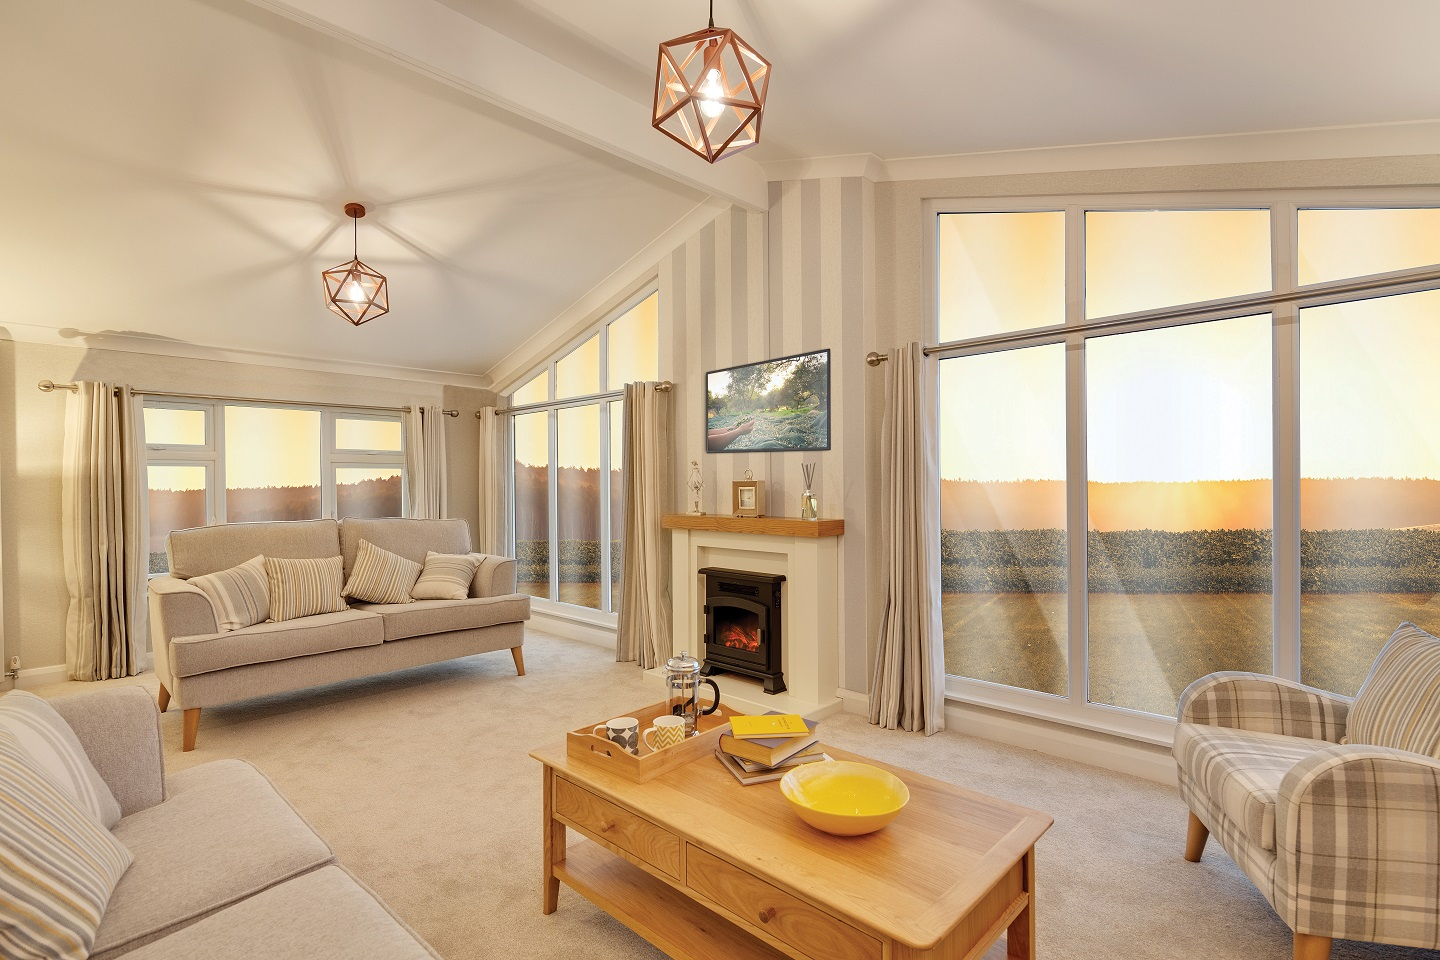 Willerby Delamere: New Holiday Lodges and Park Homes for Sale, Durham, Durham and Weardale Large Image 2